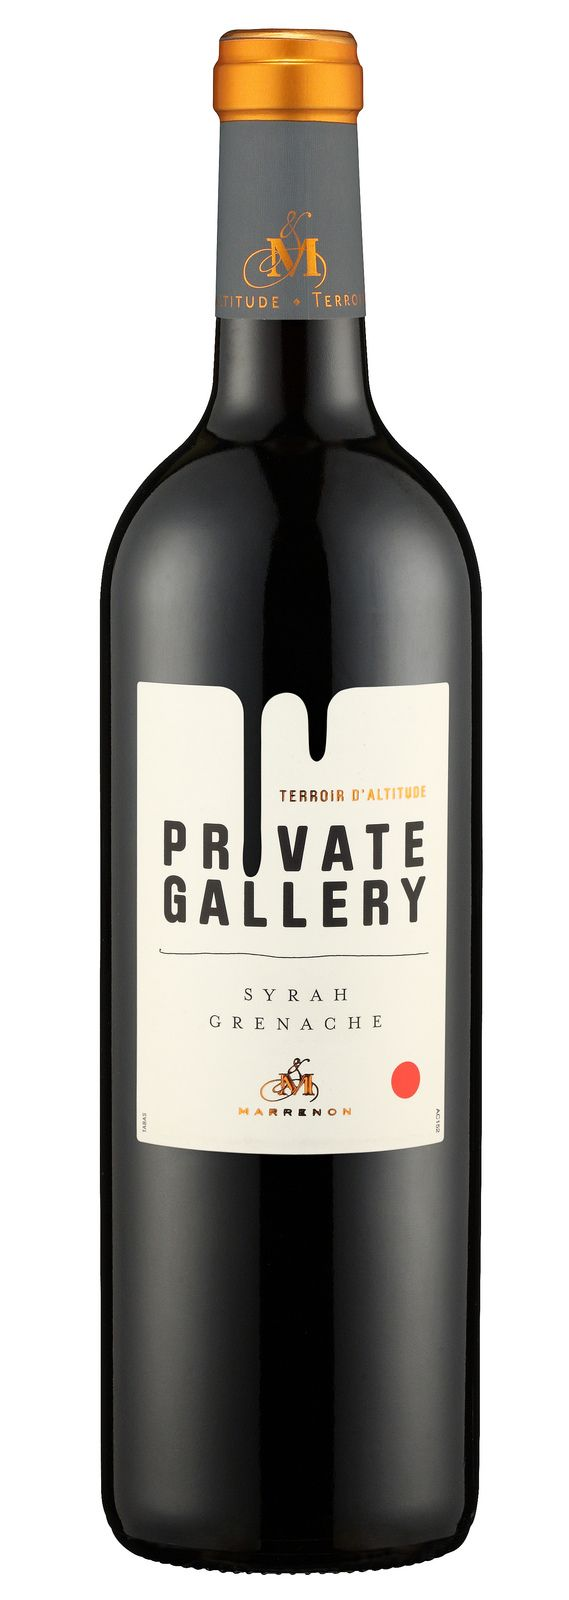 PRIVATE GALLERY SYRAH GRENACHE | Flickr - Photo Sharing!